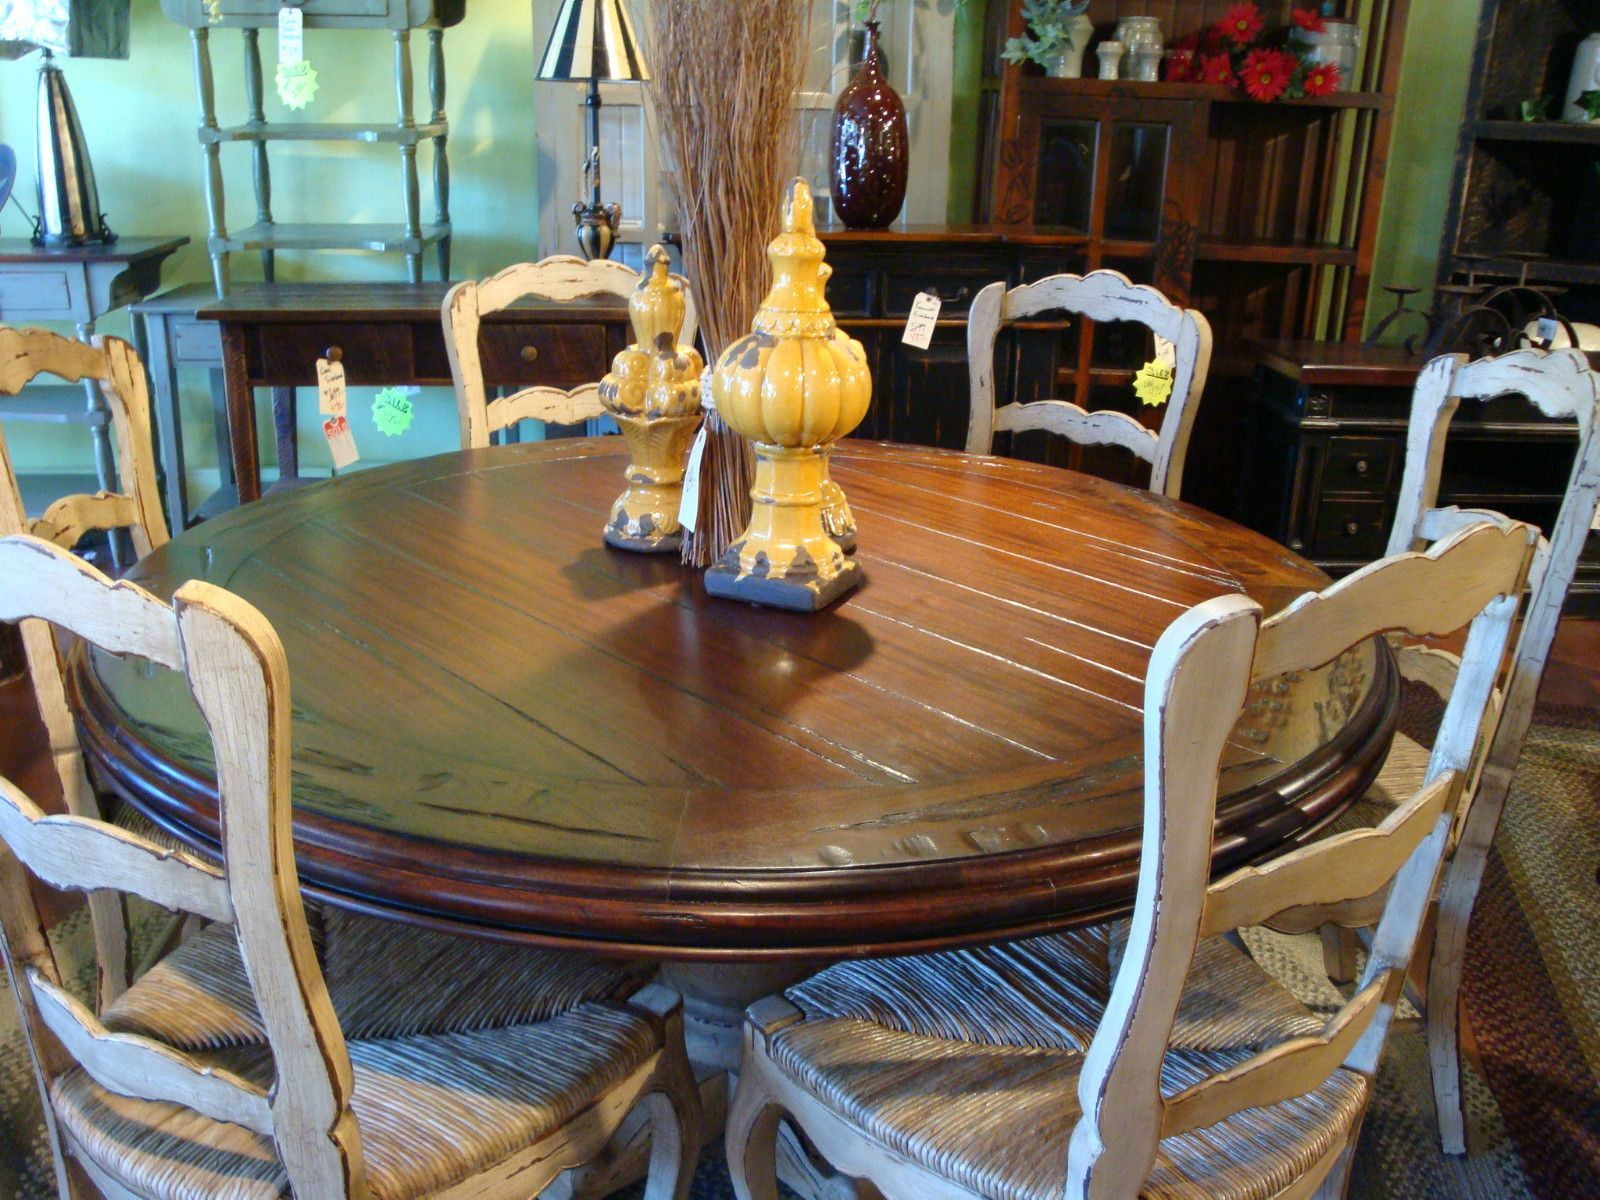 Pin By Renae On Sunroom Country Kitchen Tables Round Dining Table Sets Country Dining Tables